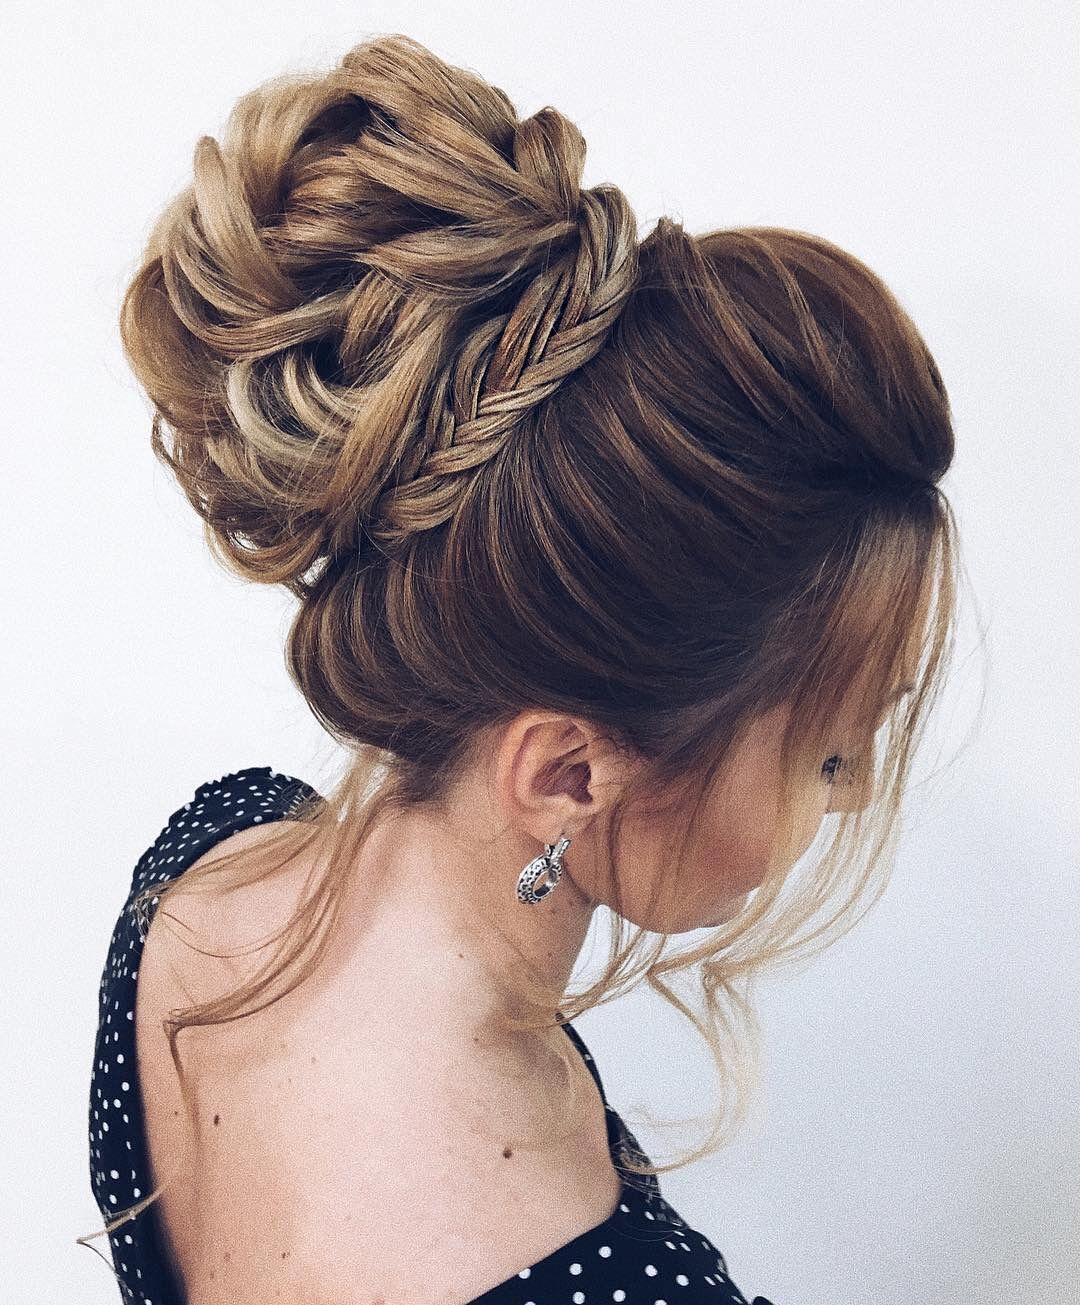 Romantic Updo Hairstyle Hair Inspiration Pinterest Updo